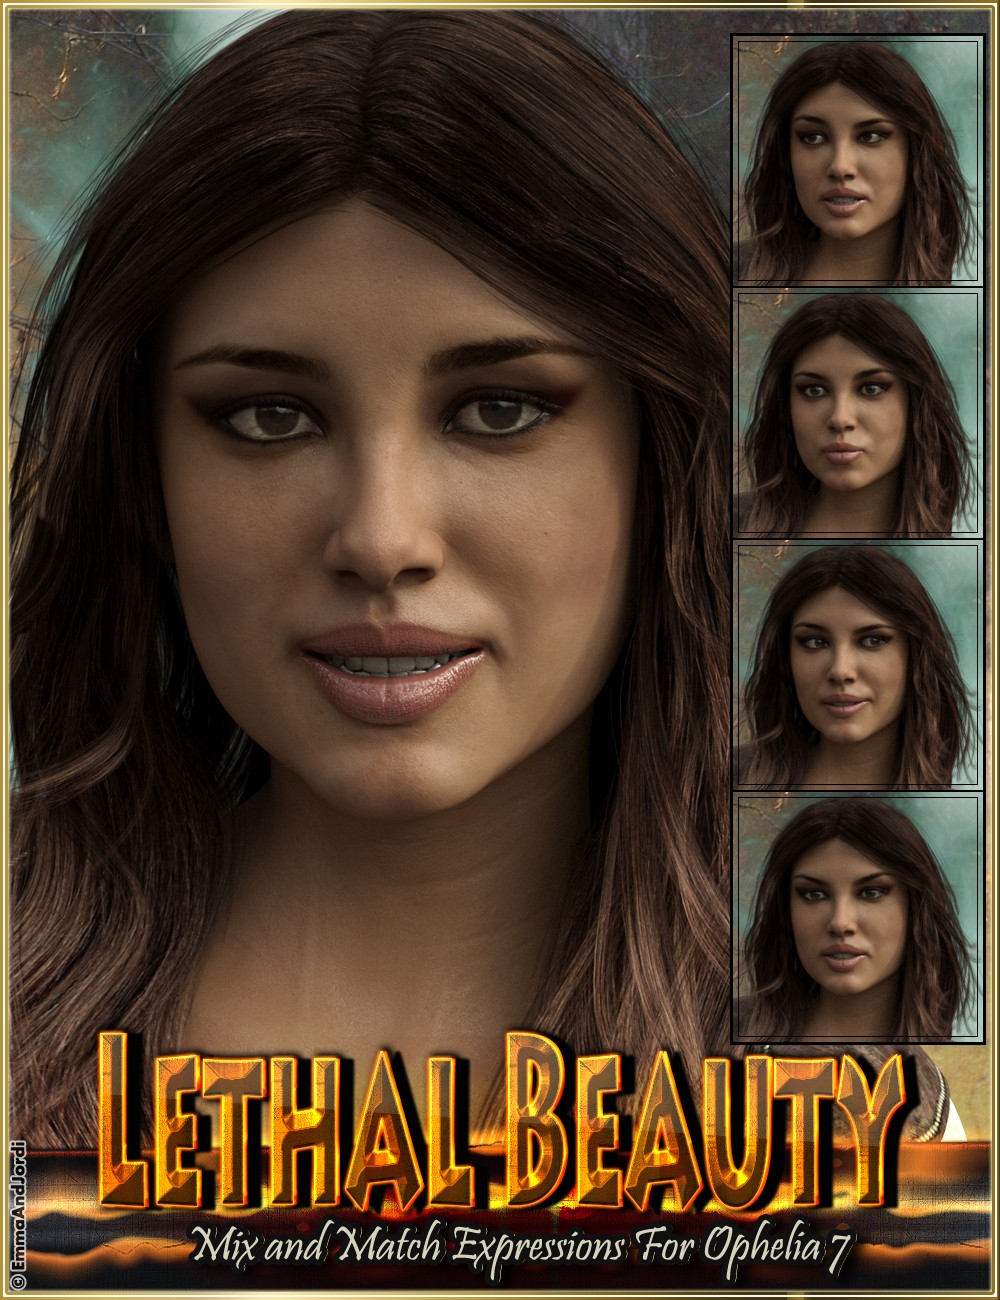 Lethal Beauty Mix and Match Expressions for Ophelia 7 and Genesis 3 Female(s)